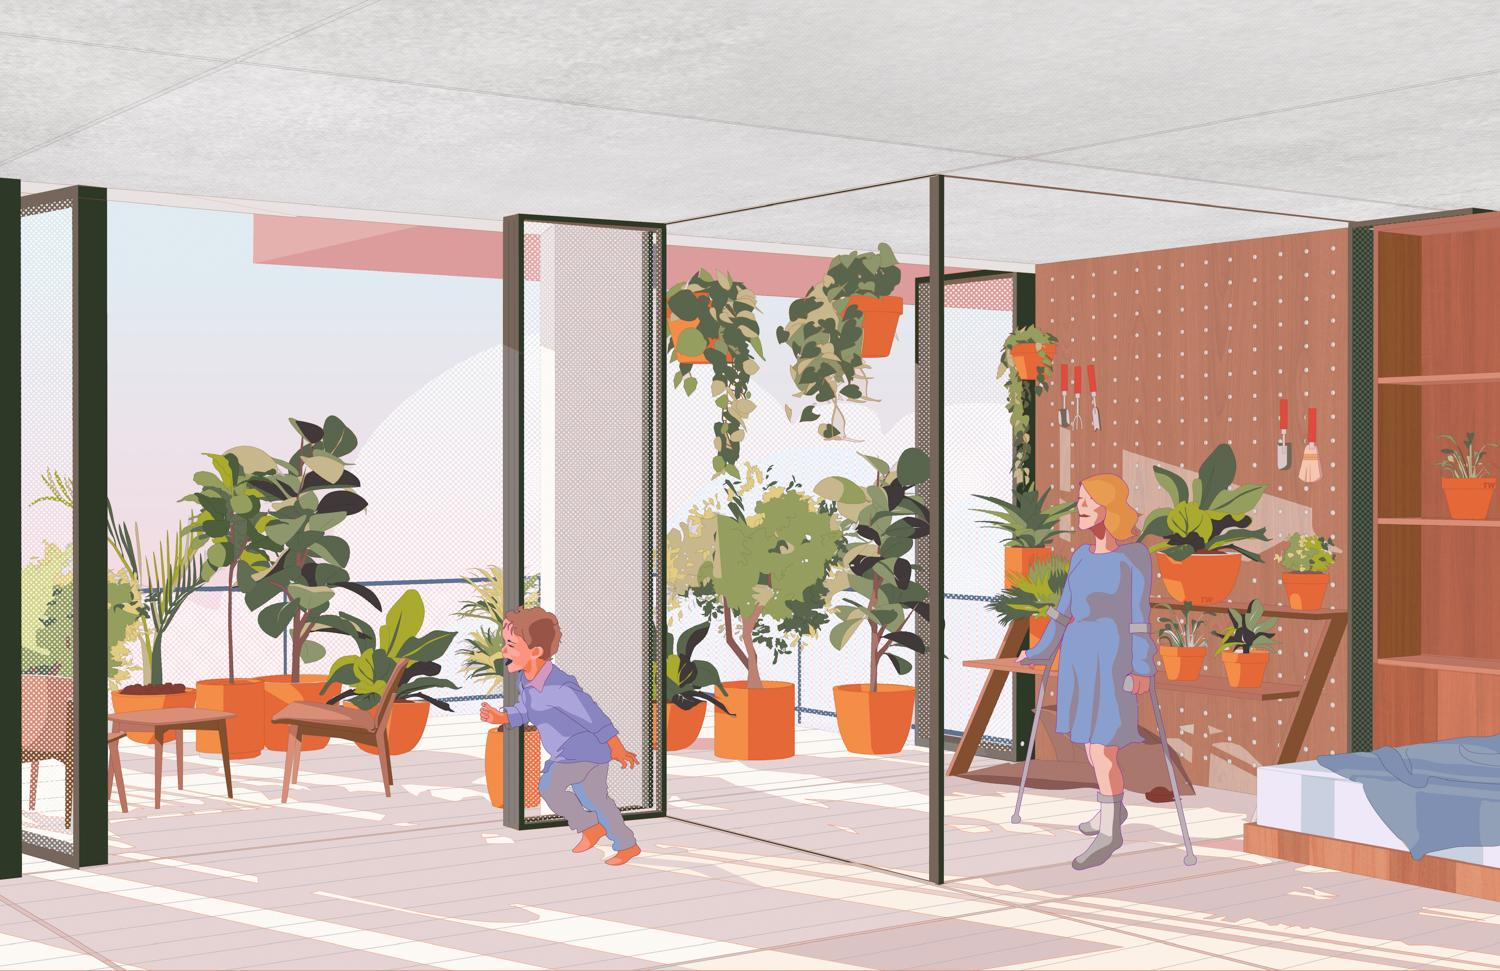 woman on crutches watches child running in apartment with balcony door open beside a glazed sunroom with plants